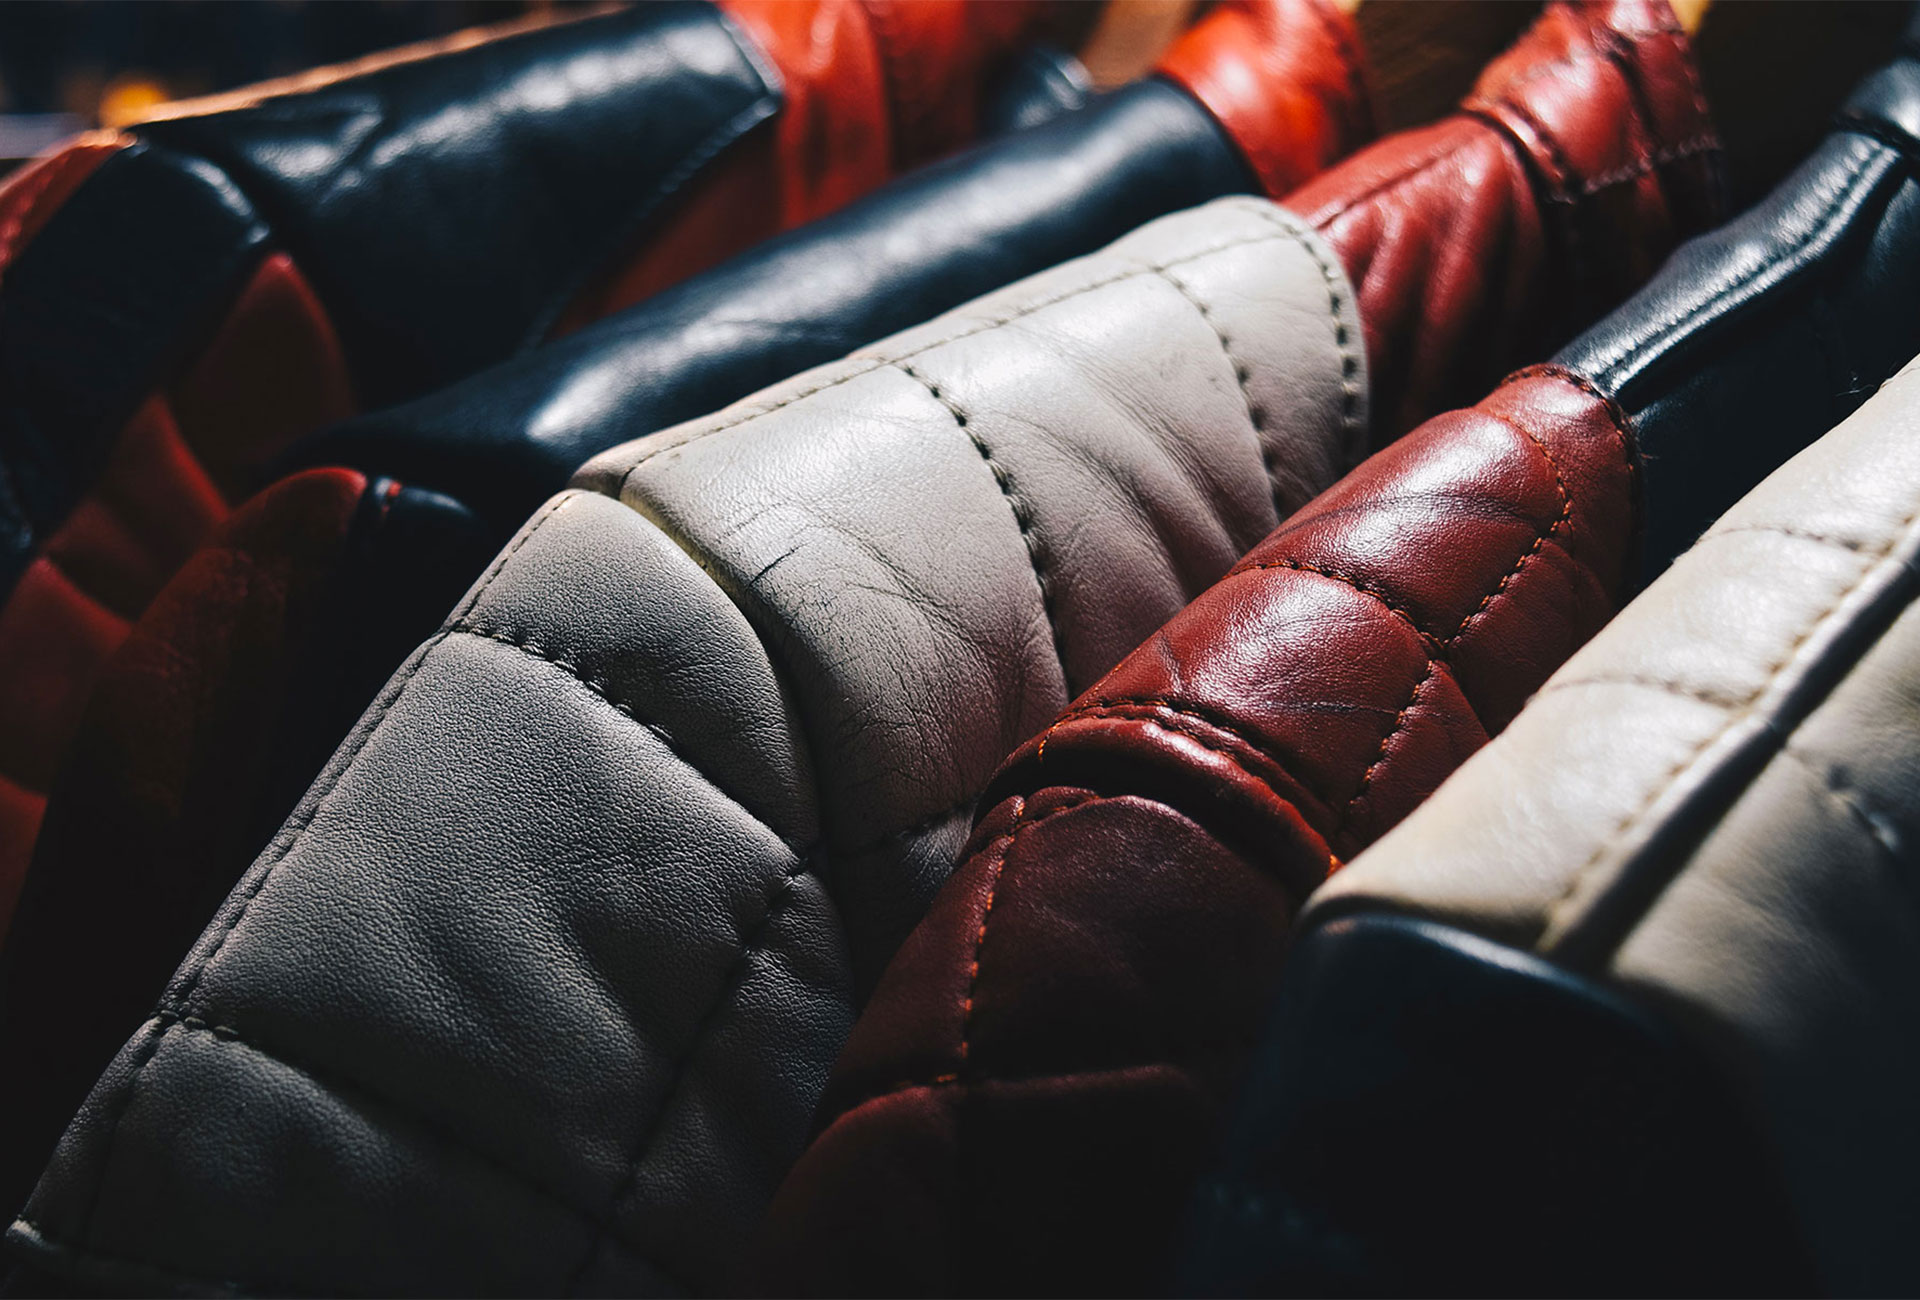 FASHION&DESIGN: THE LEATHER JACKET IS 90 YEARS OLD